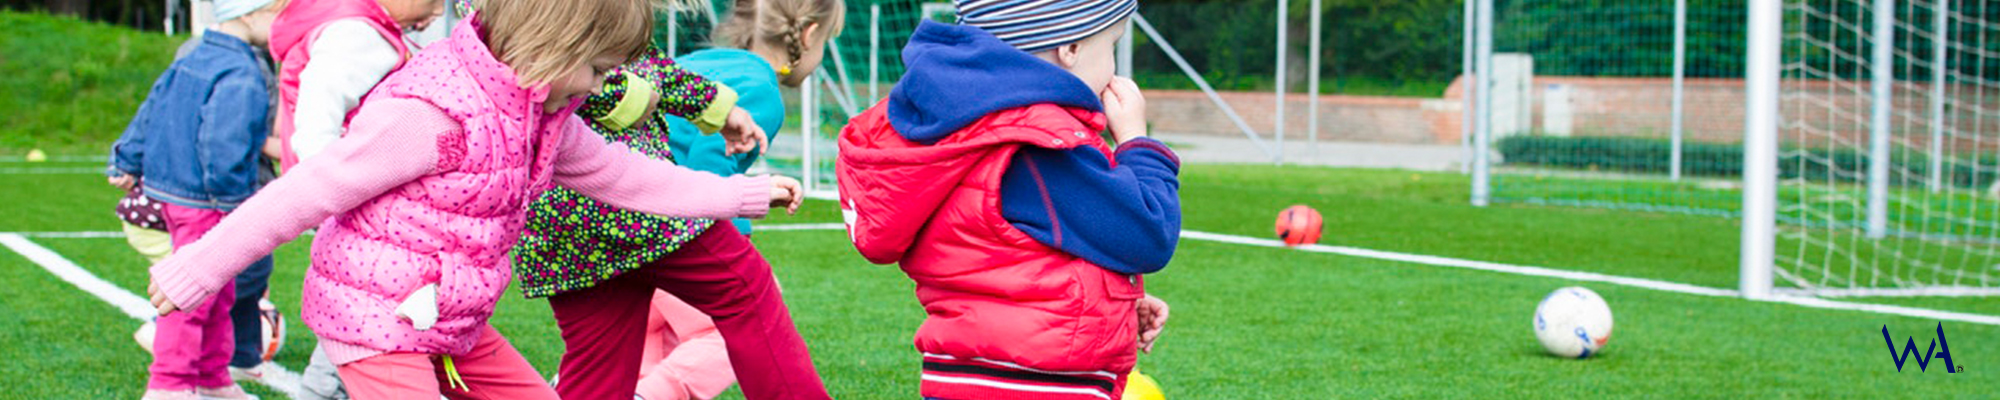 The Top Reasons Sports Are Good For Kids